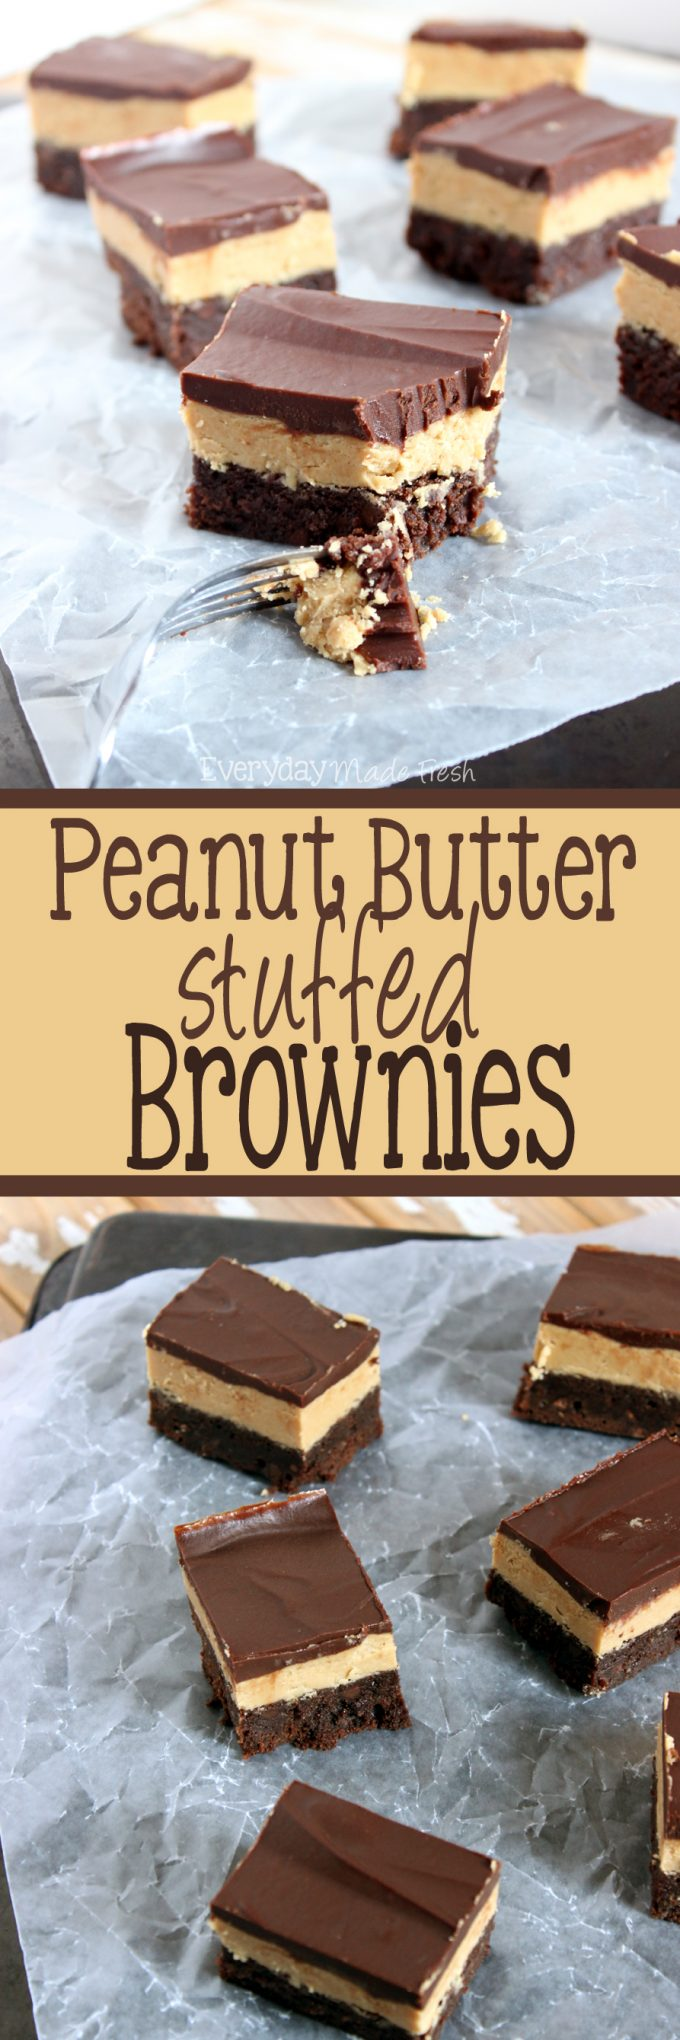 Peanut Butter Stuffed Brownies really don't need any introduction, the name says it all!   EverydayMadeFresh.com